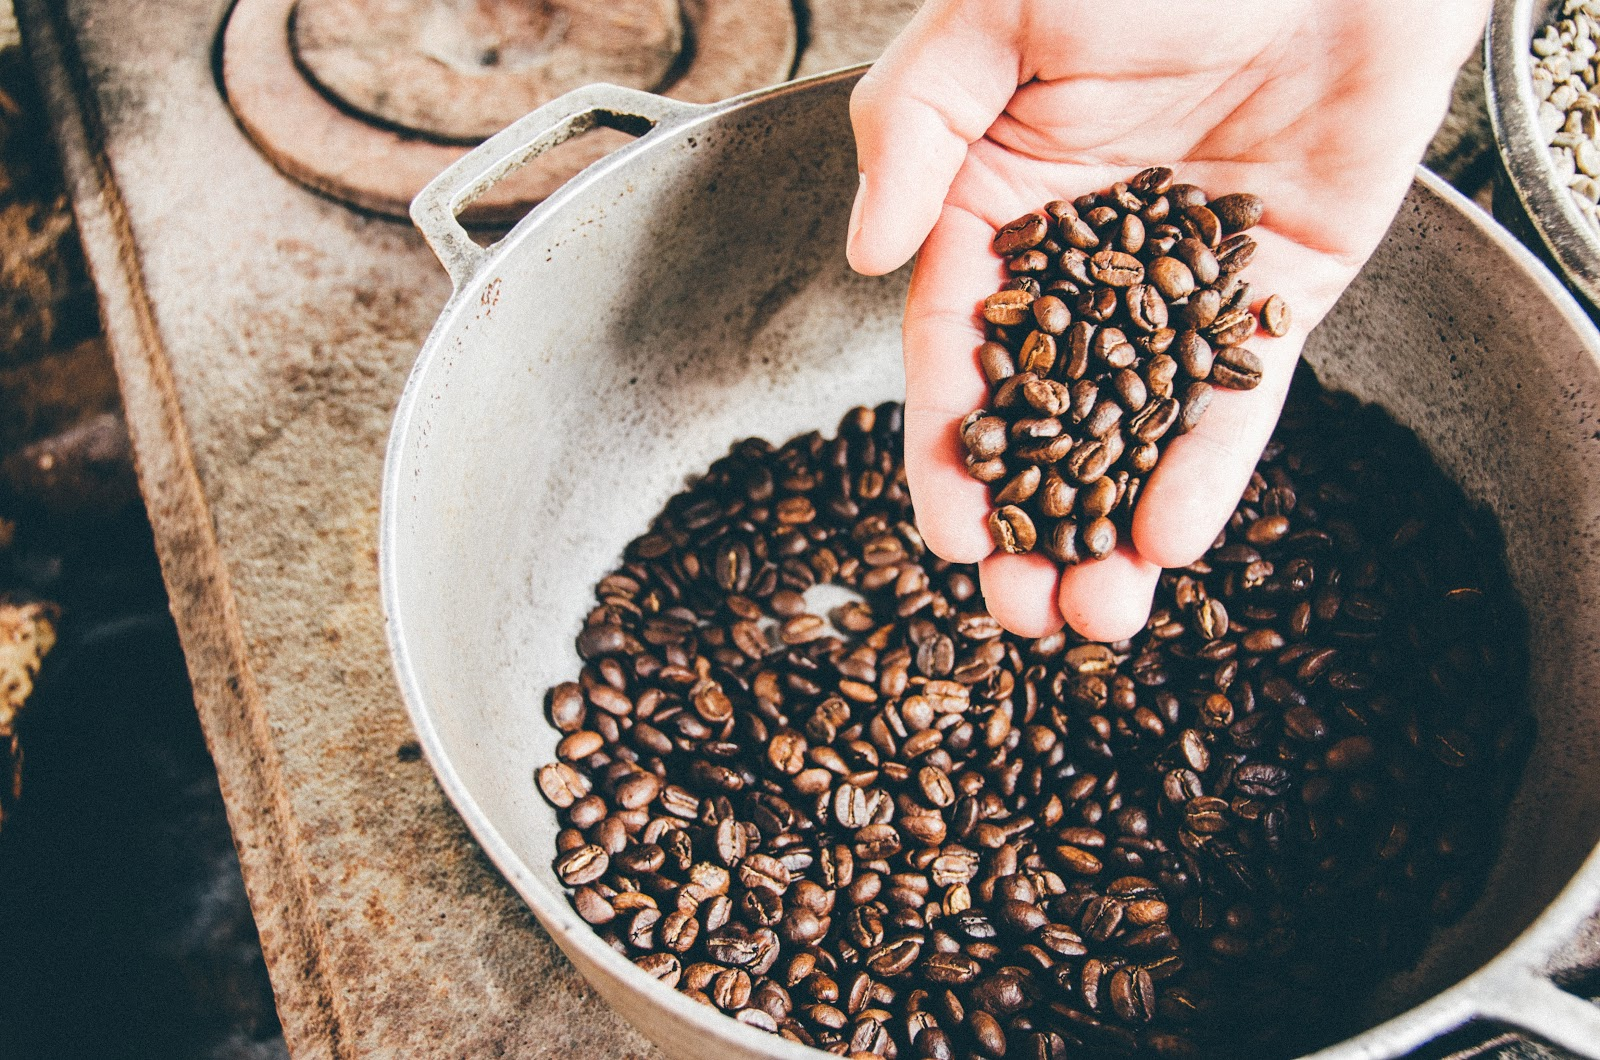 a person using his hand to scoop up coffee beans from a pot filled with beans.